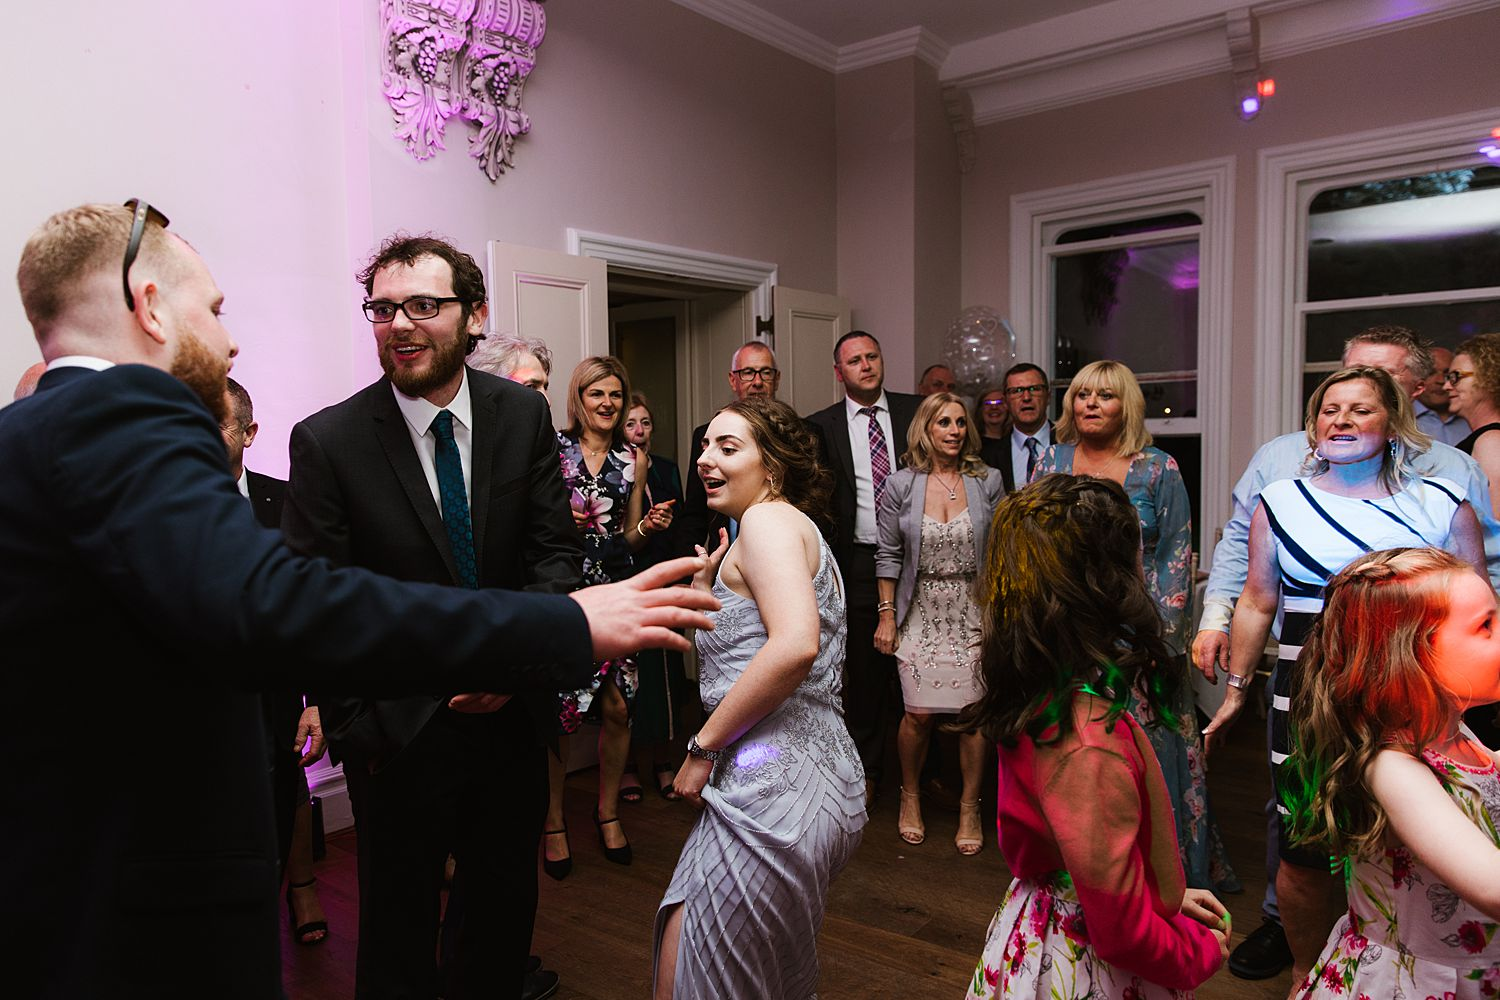 Dancing guests at evening reception at Storrs Hall wedding